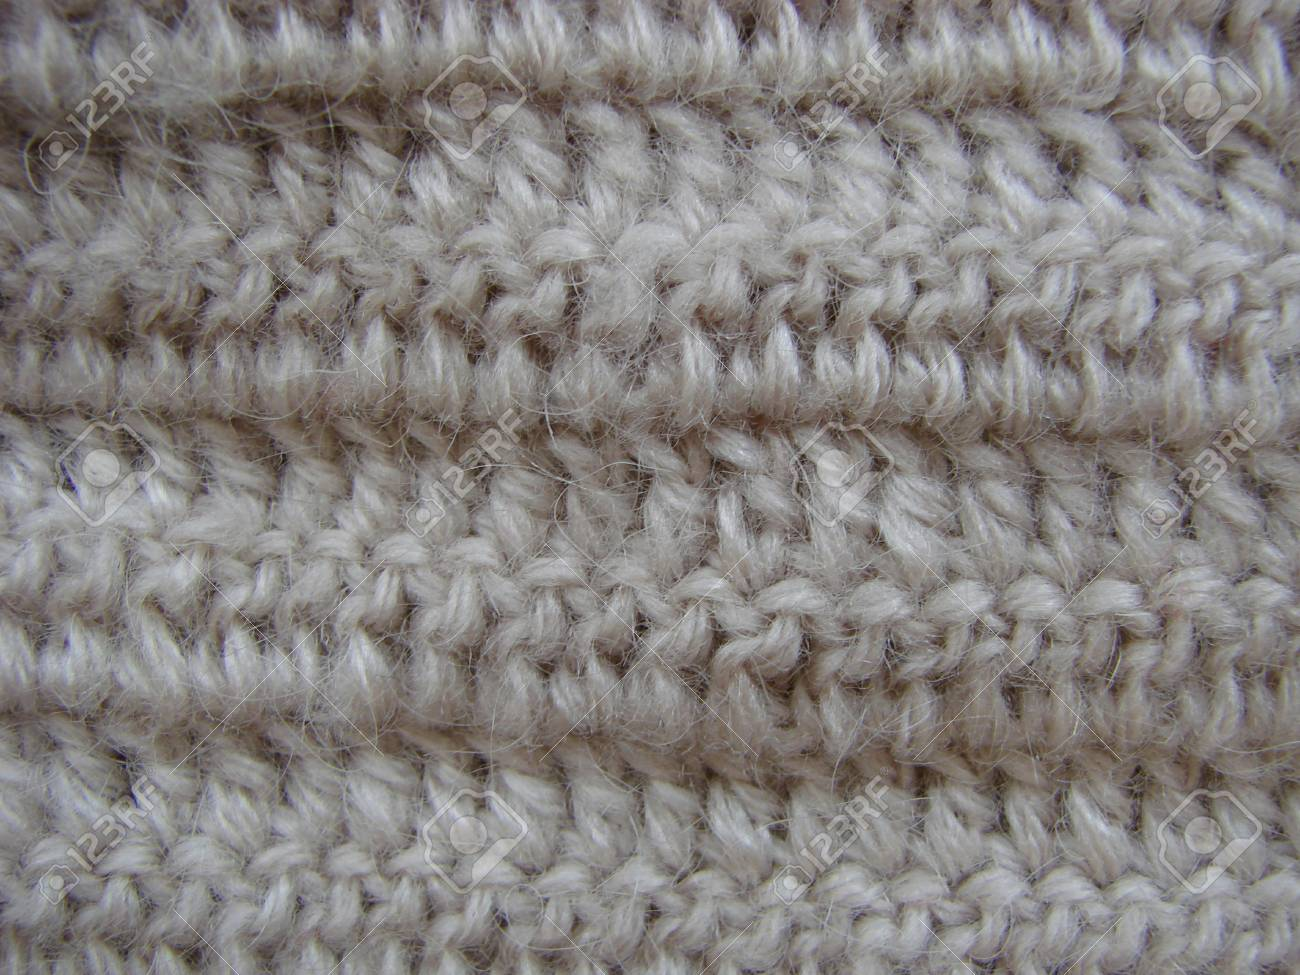 6ebbf4a0085f2 Stock Photo - Winter Design. knitting wool texture background. knitted  fabric texture. Knitted jersey background with a relief pattern. Crochet.  copy space